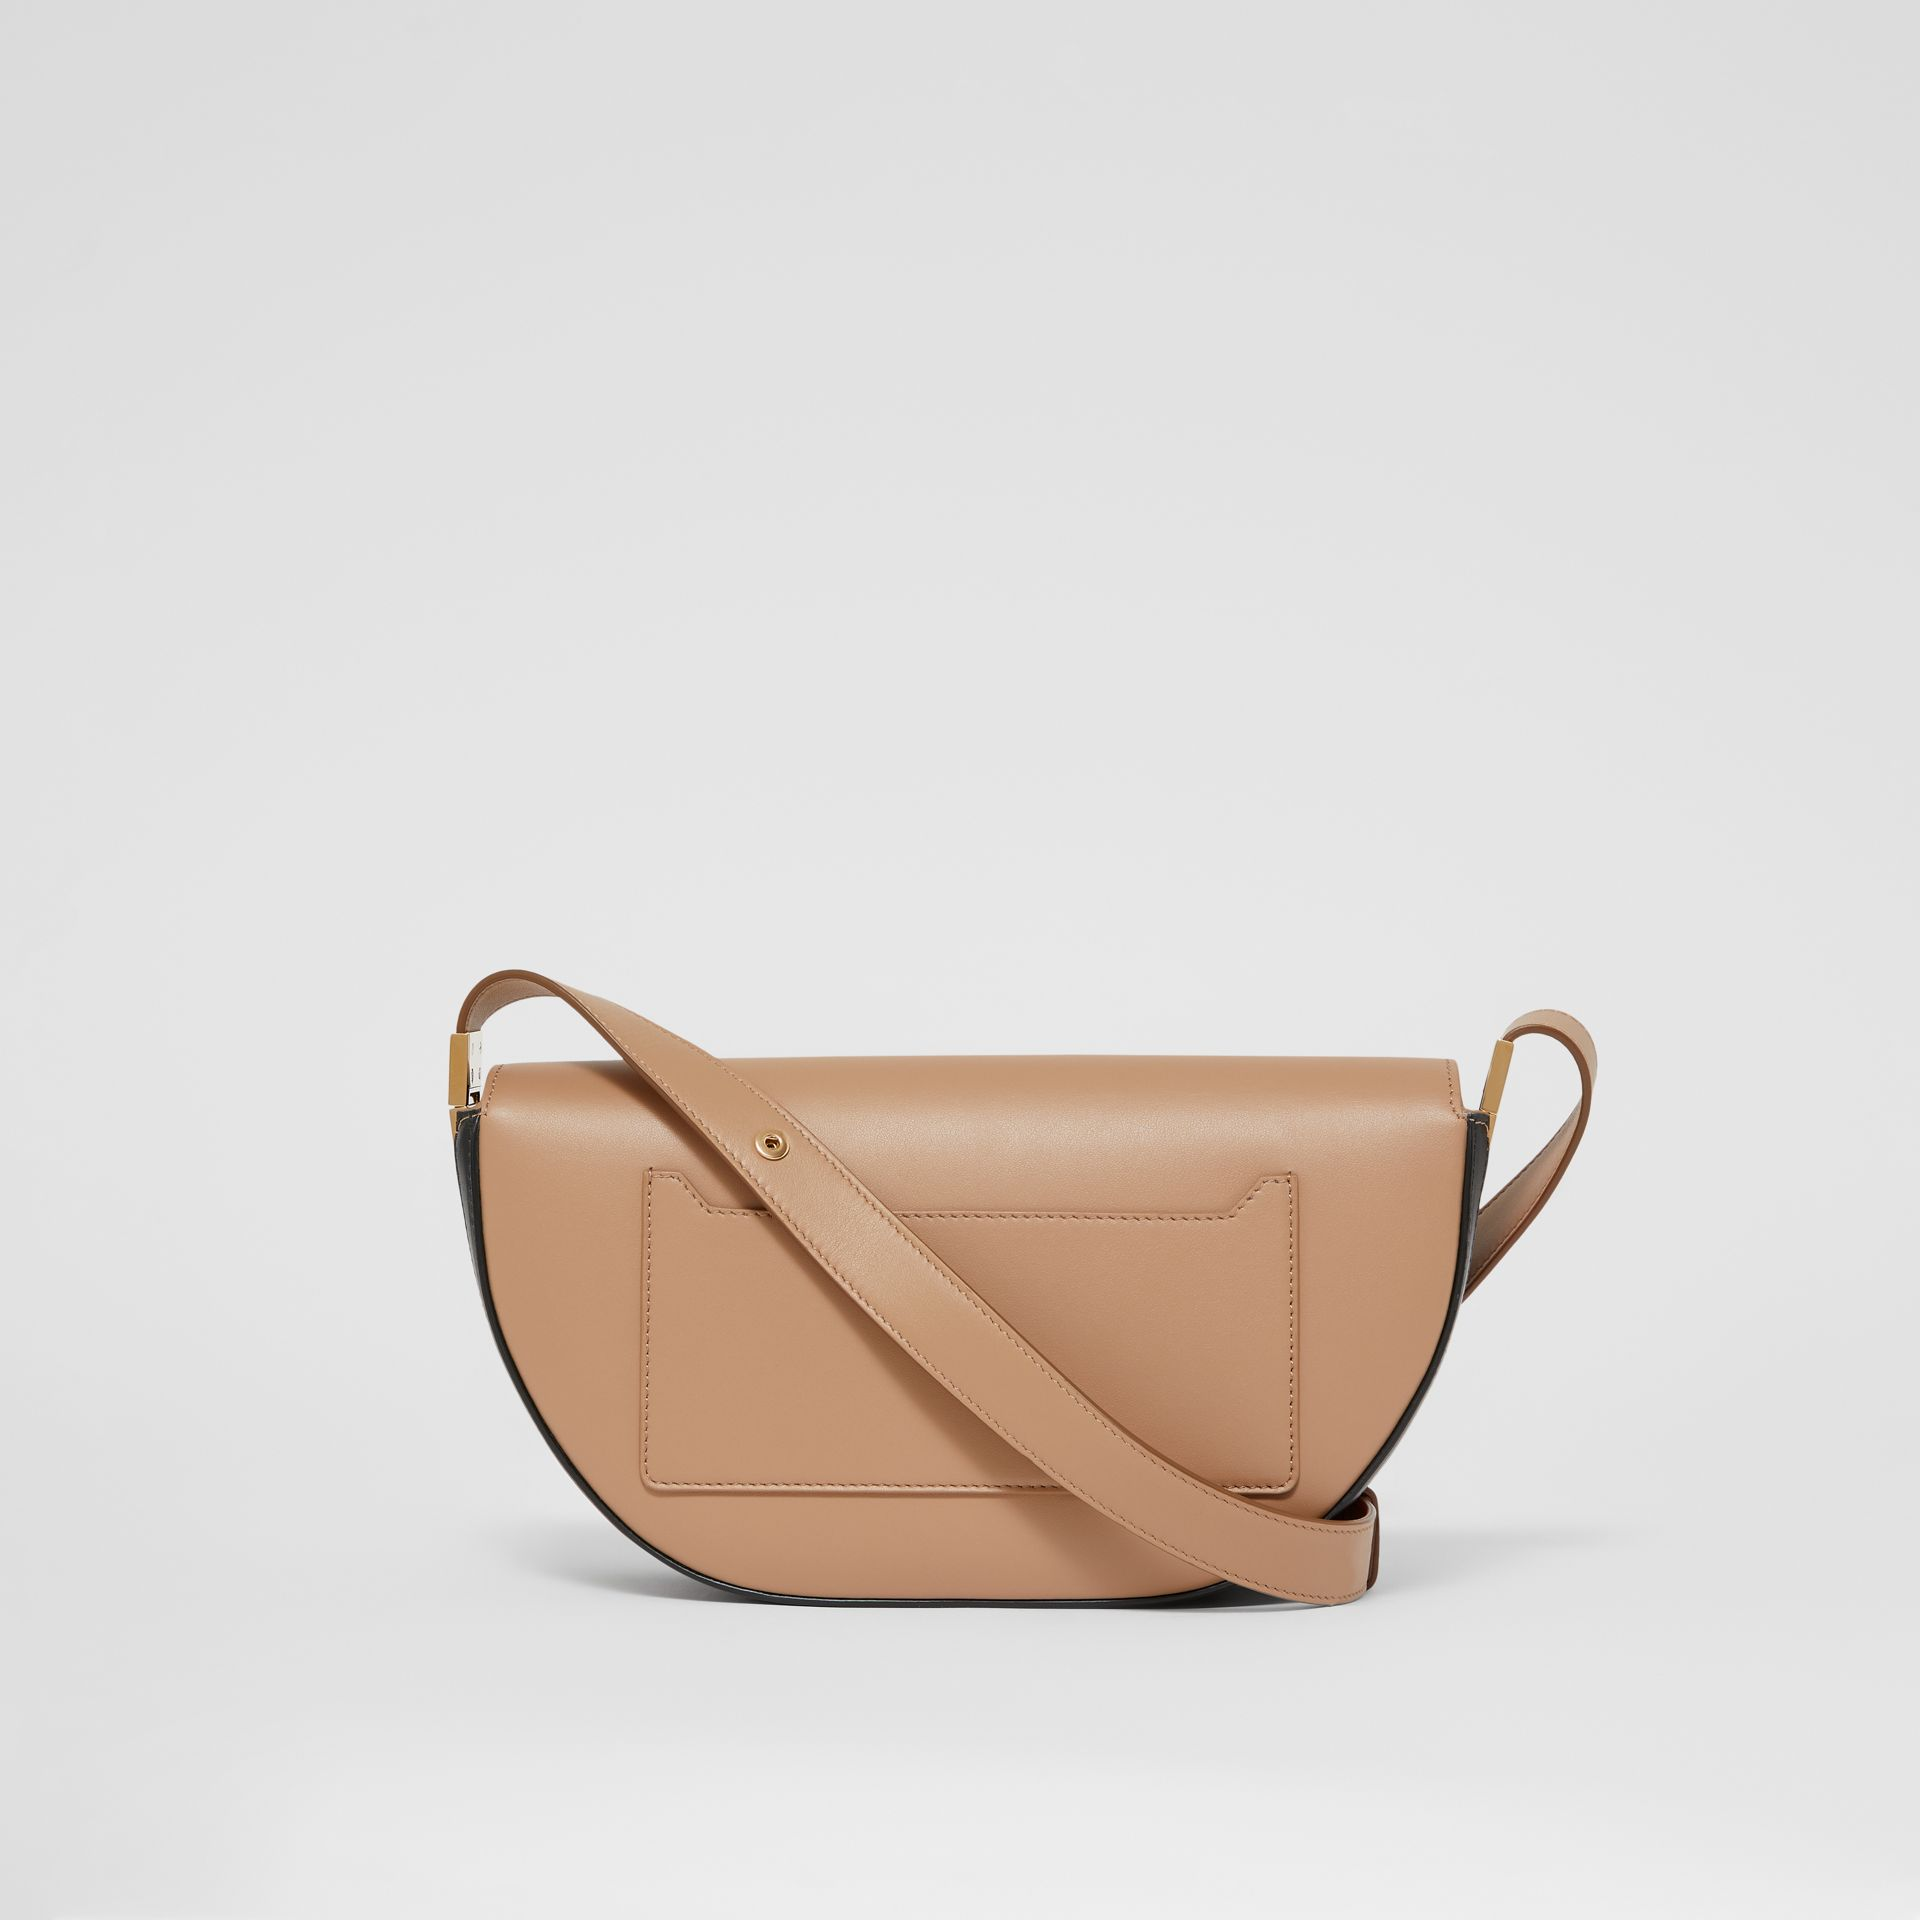 Small Leather Olympia Bag in Camel - Women | Burberry - gallery image 7